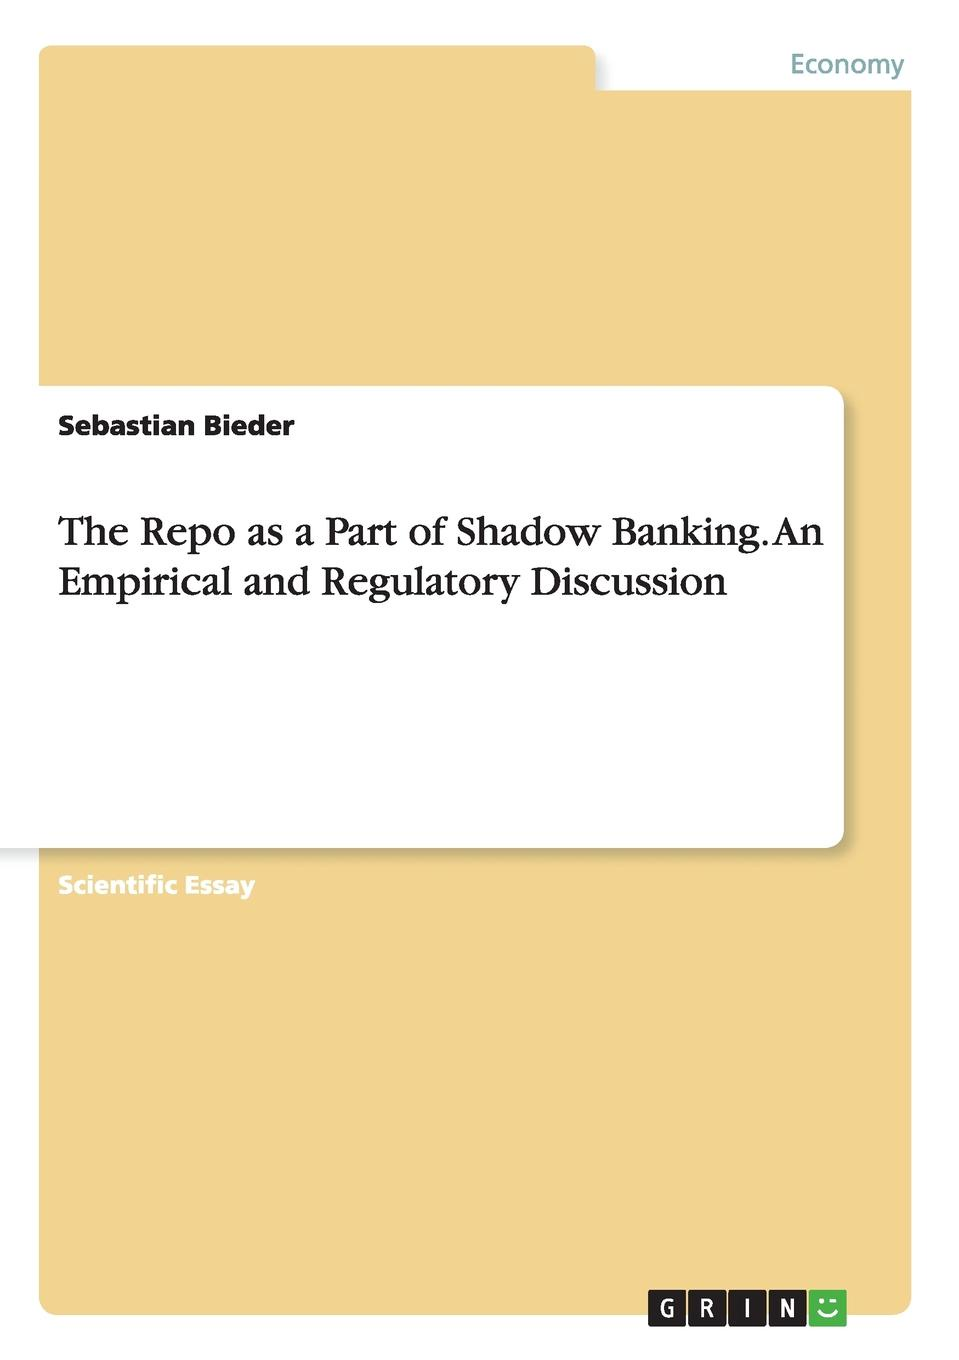 The Repo as a Part of Shadow Banking. An Empirical and Regulatory Discussion